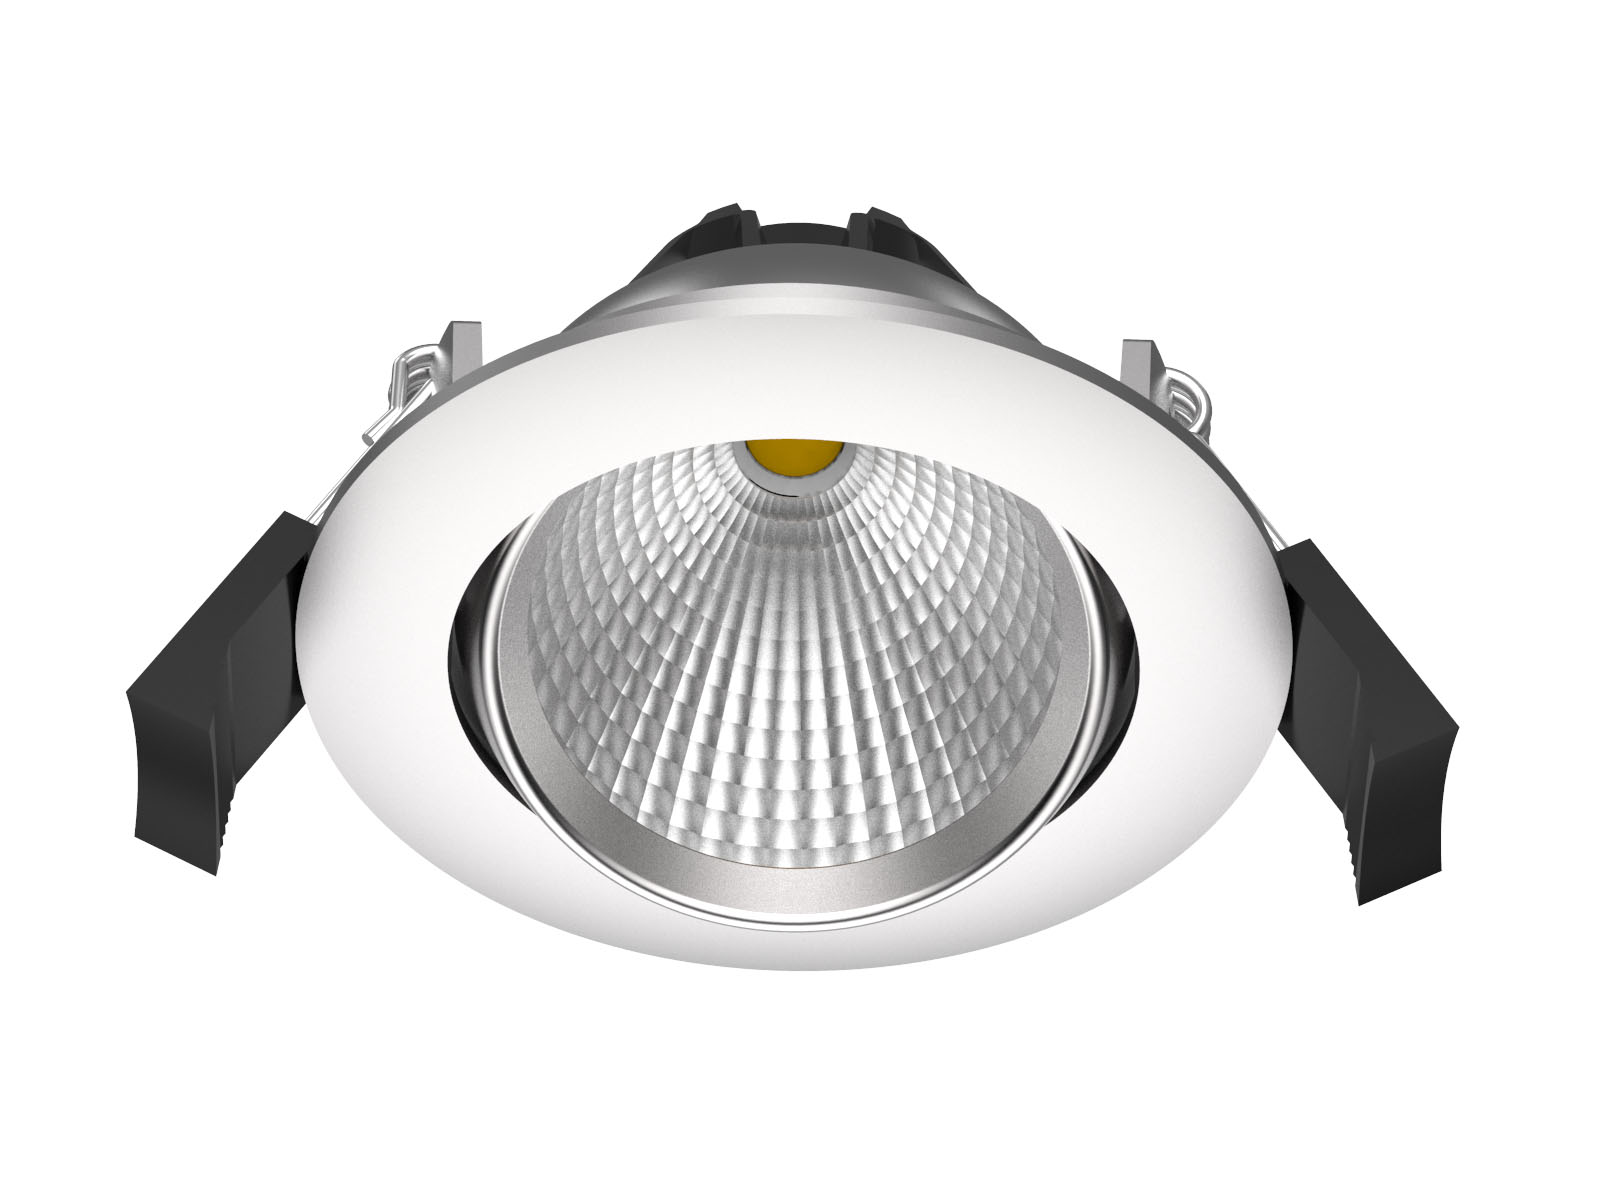 CL81 LED Downlight